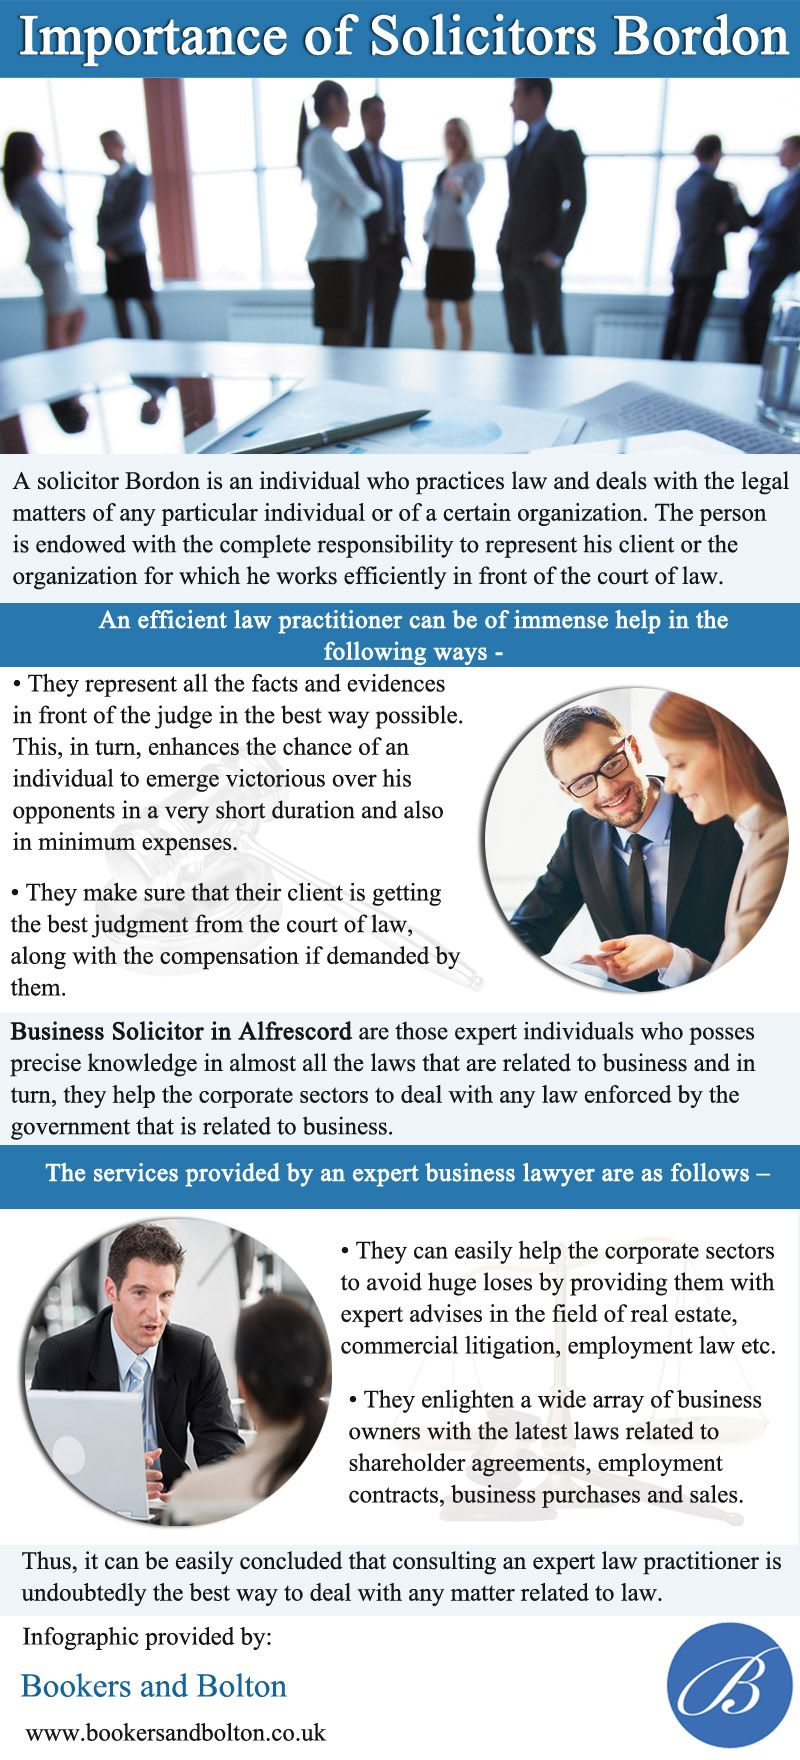 They Can Easily Help The Corporate Sectors To Avoid Huge Loses By